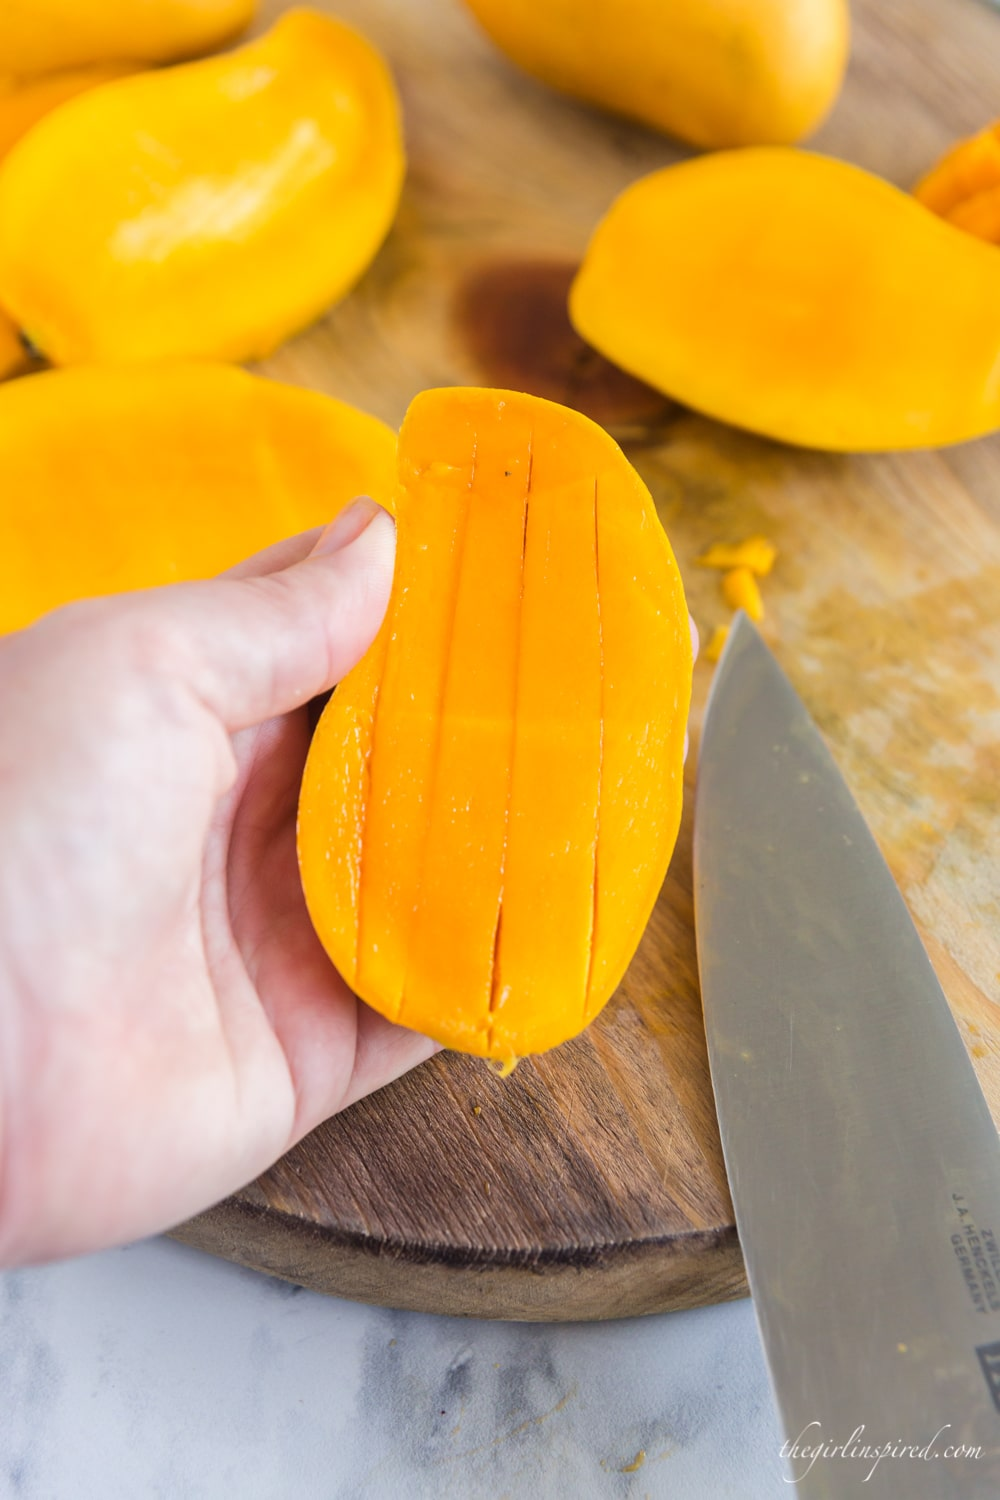 knife, cutting board and lengthwise slice pattern in mango half